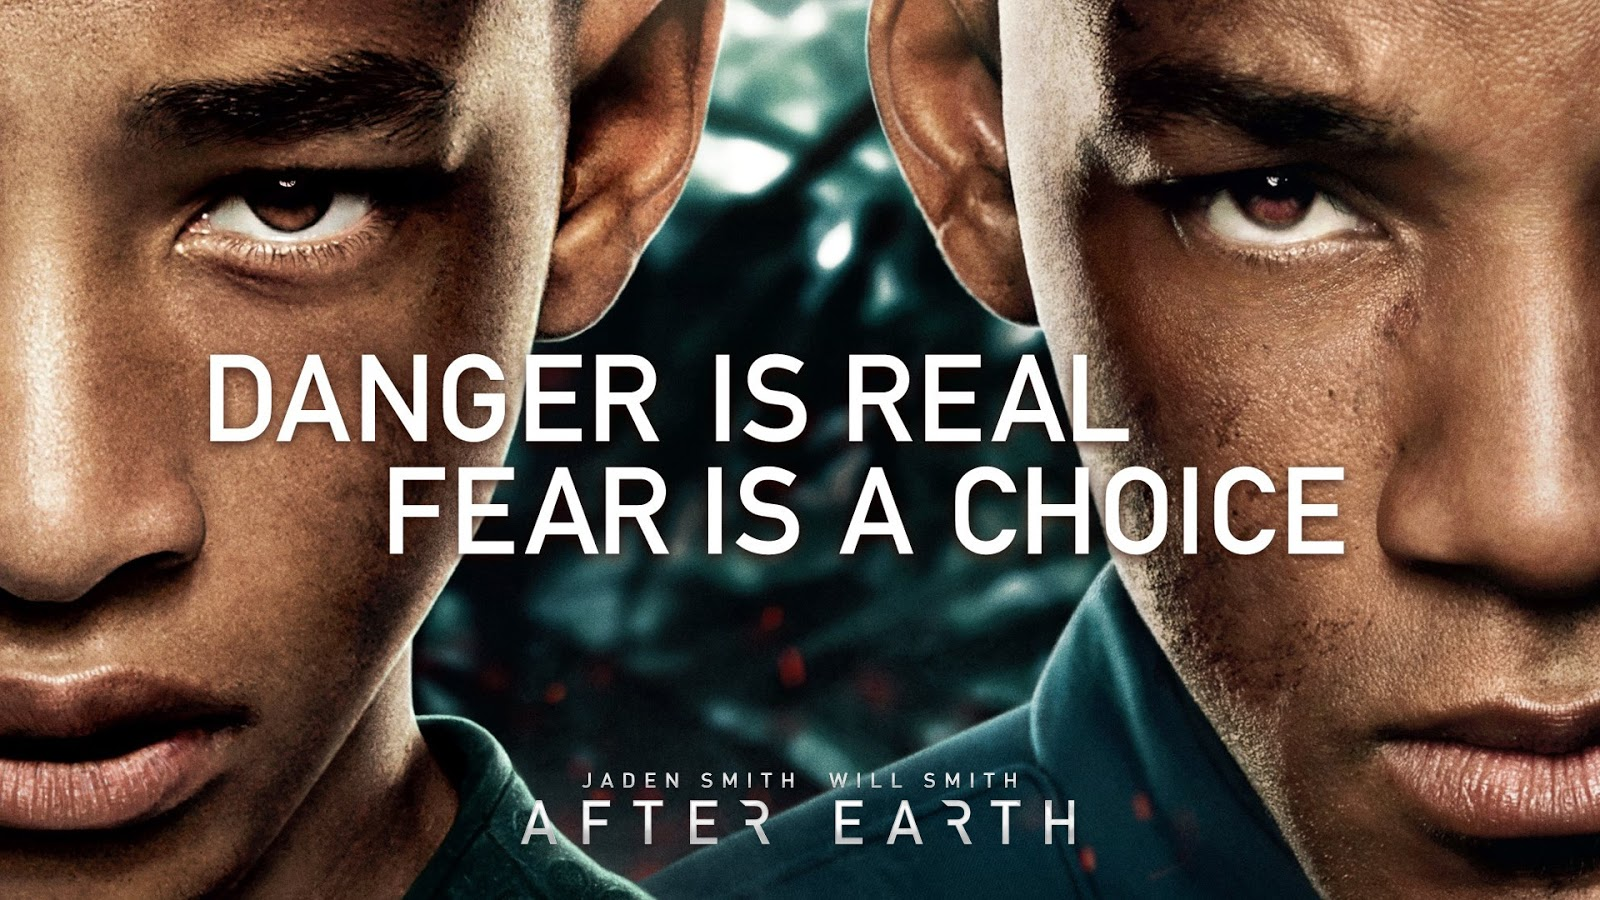 After Earth Movie Danger is Real